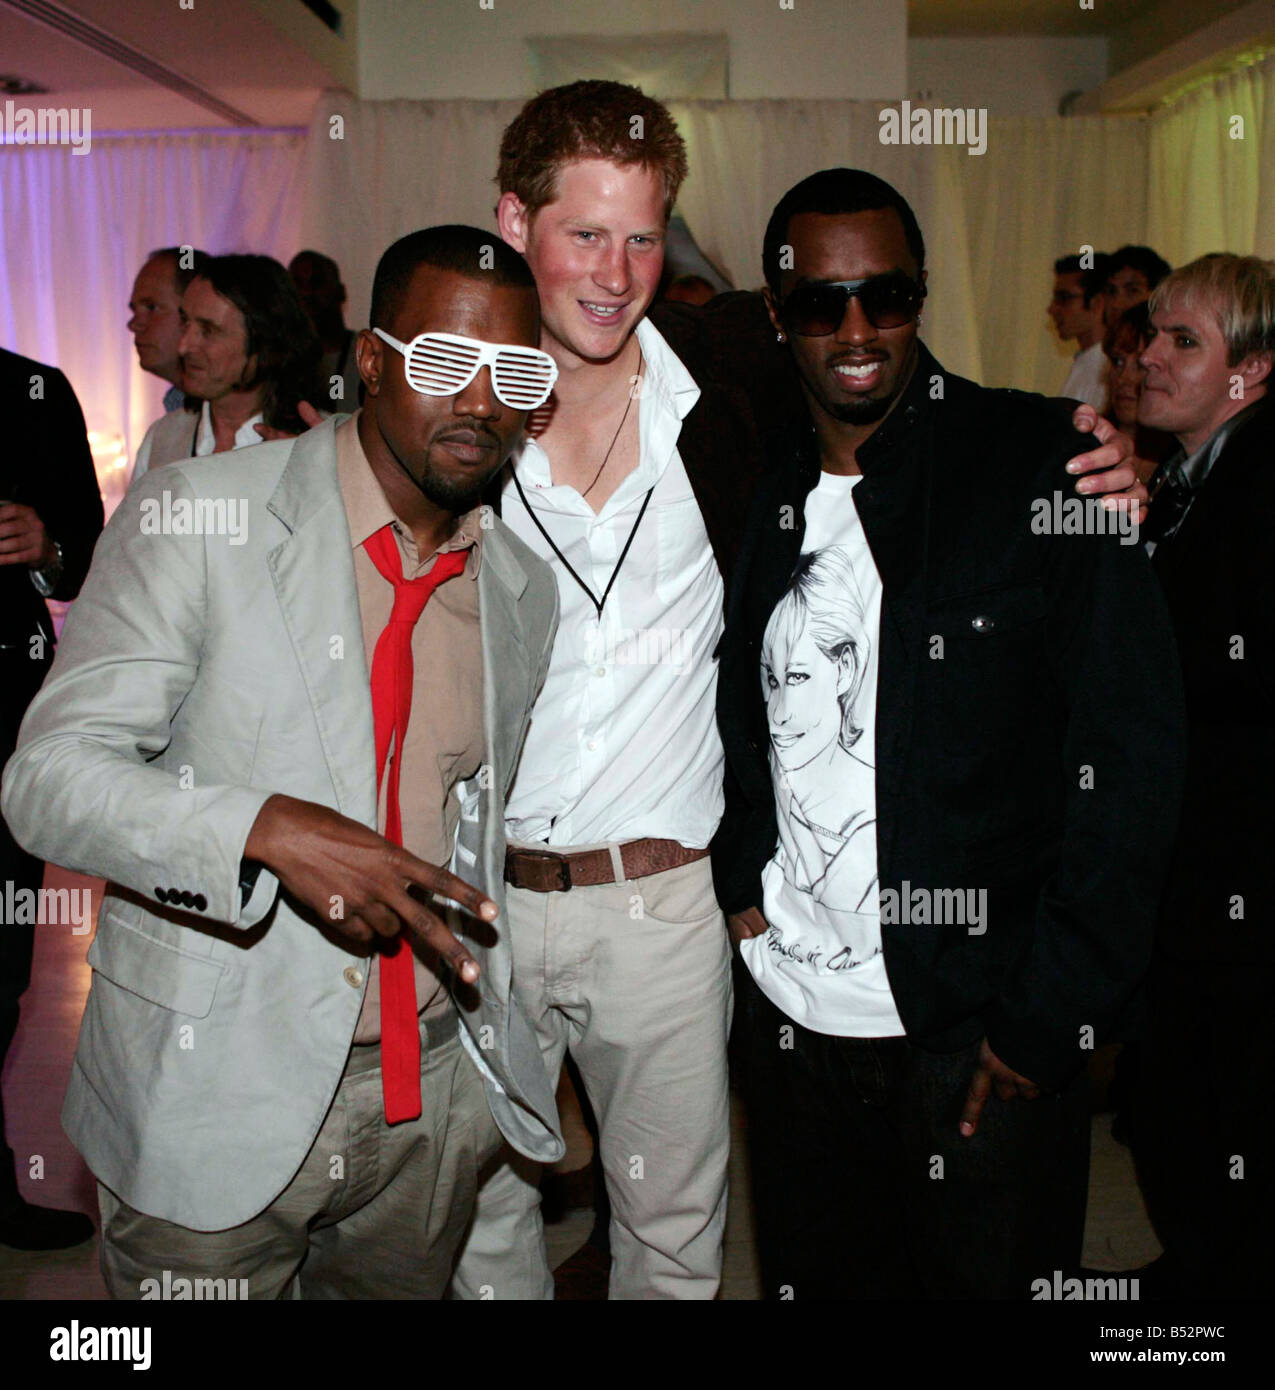 Prince Harry with Kanye West and P Diddy - Stock Image